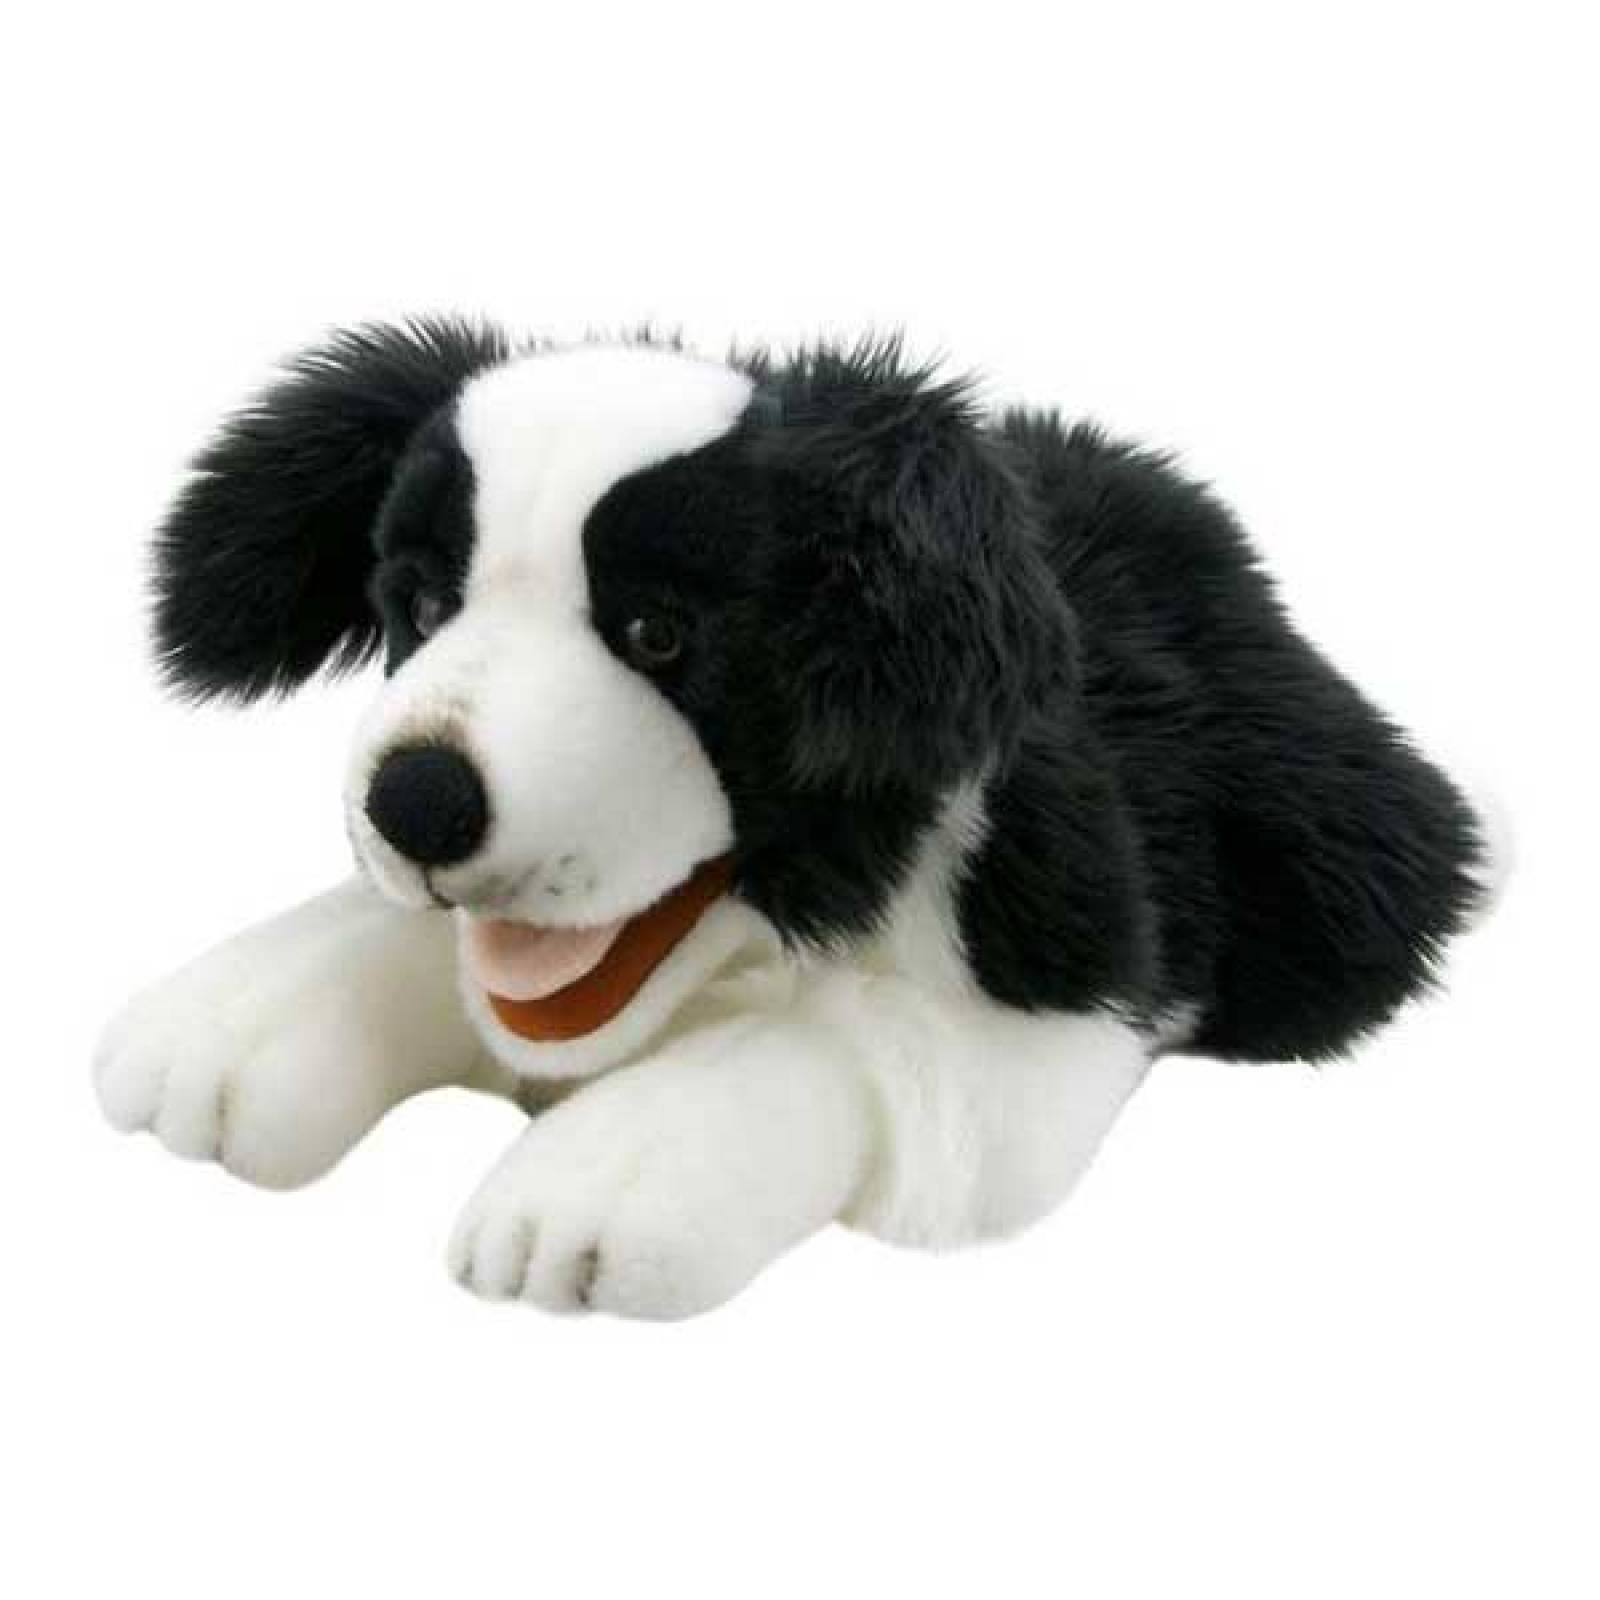 Border Collie Dog Playful Puppy Glove Puppet thumbnails